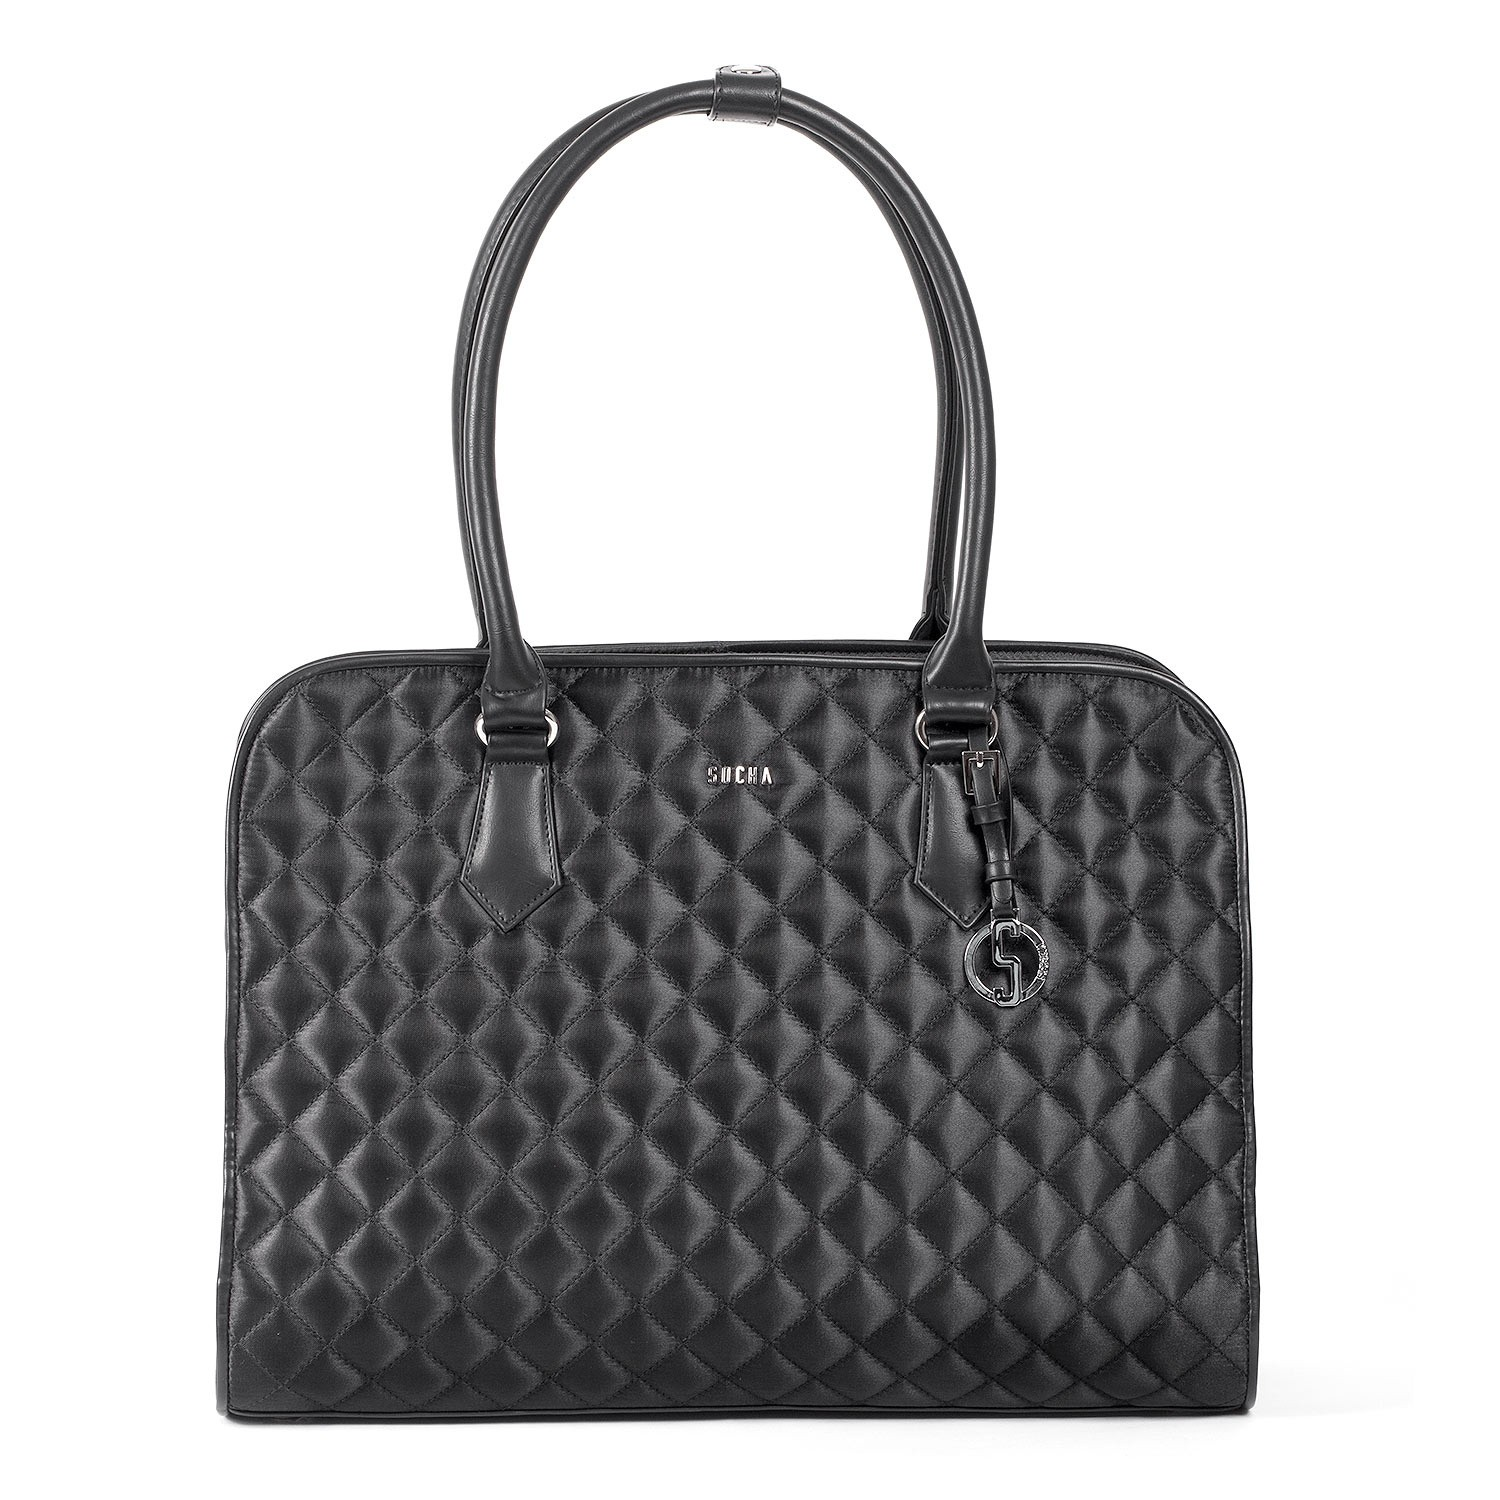 Socha Businessbag Black Diamond Facelift - 14